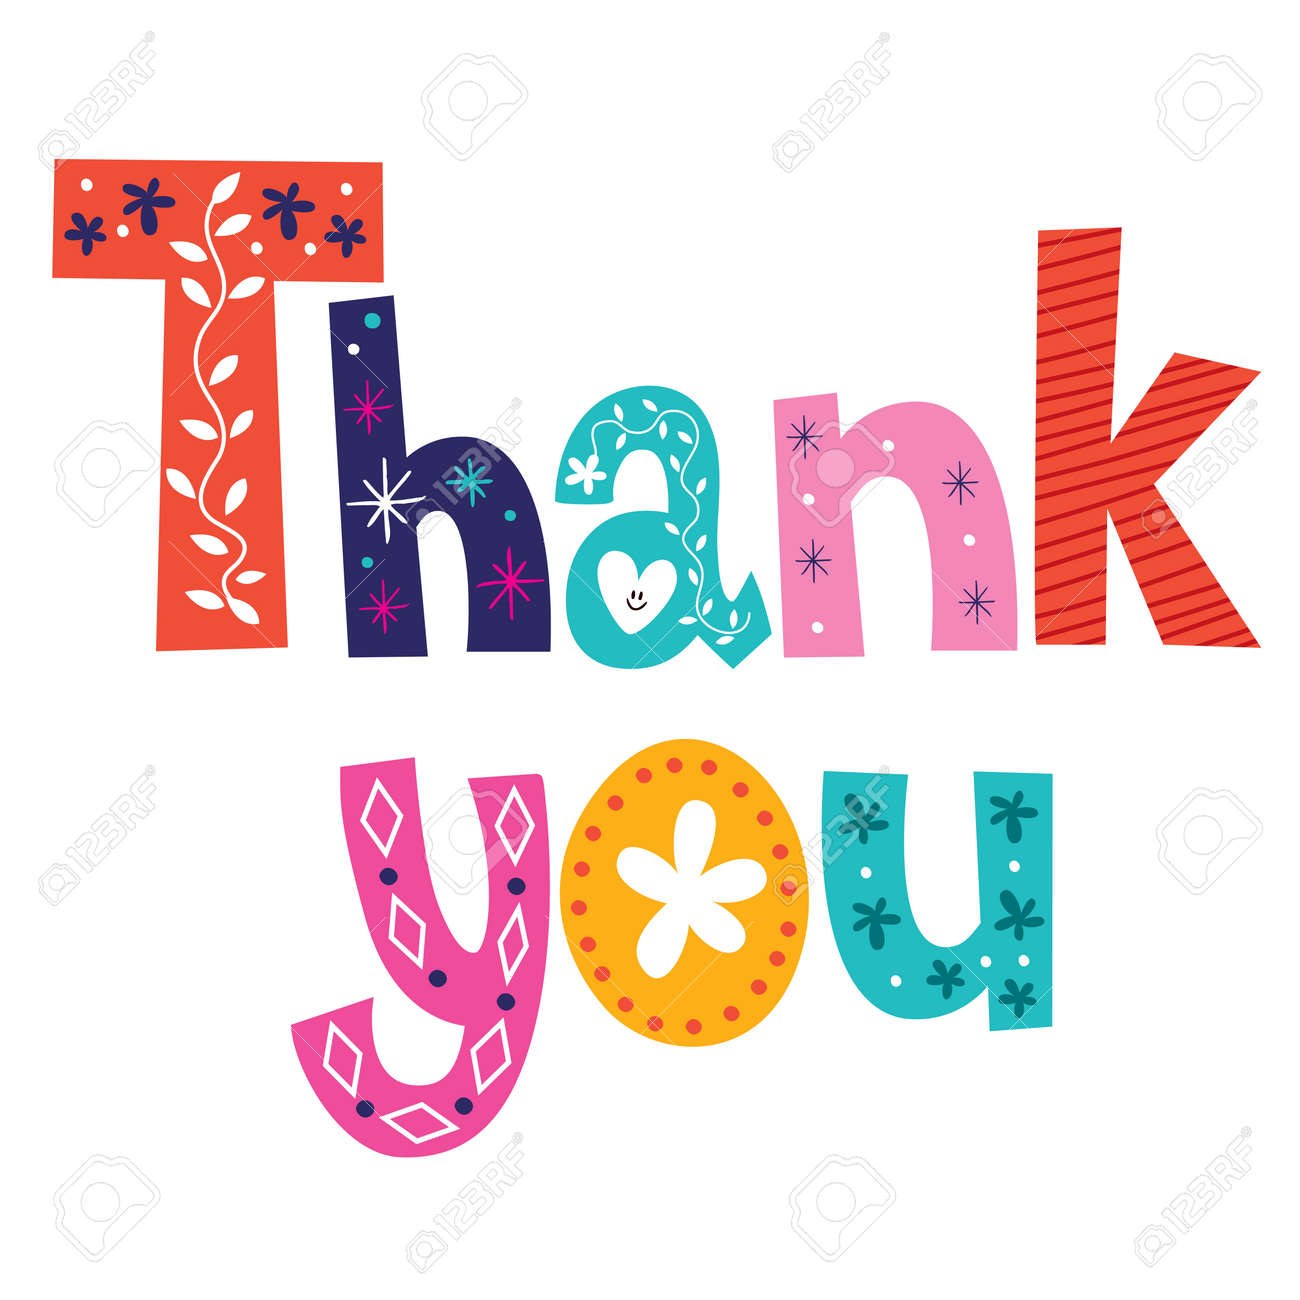 thank you card royalty free cliparts vectors and stock